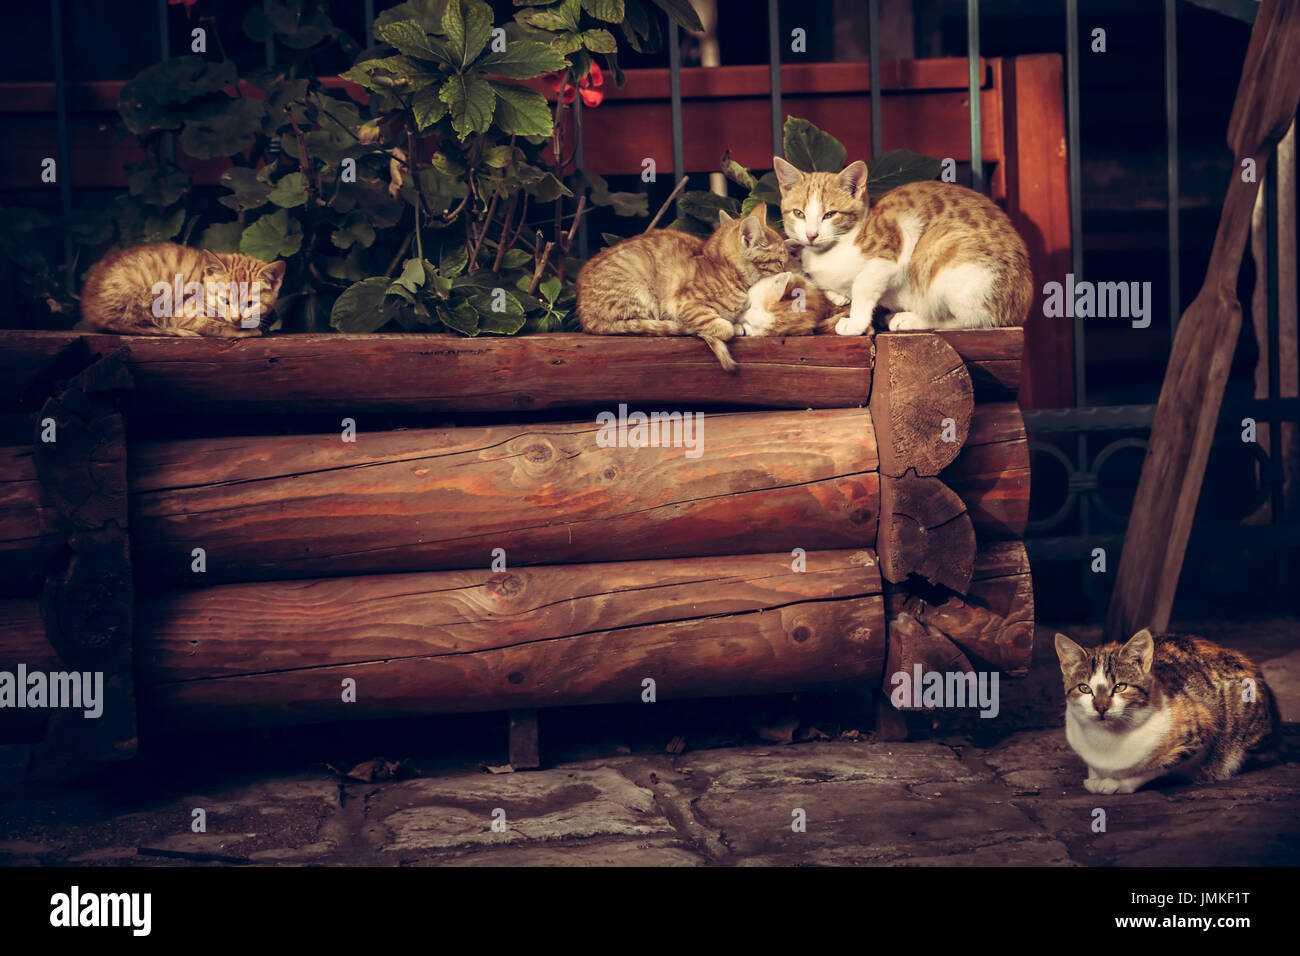 Cute red cats family with kitten resting on wooden logs in rural countryside village in vintage rustic style - Stock Image